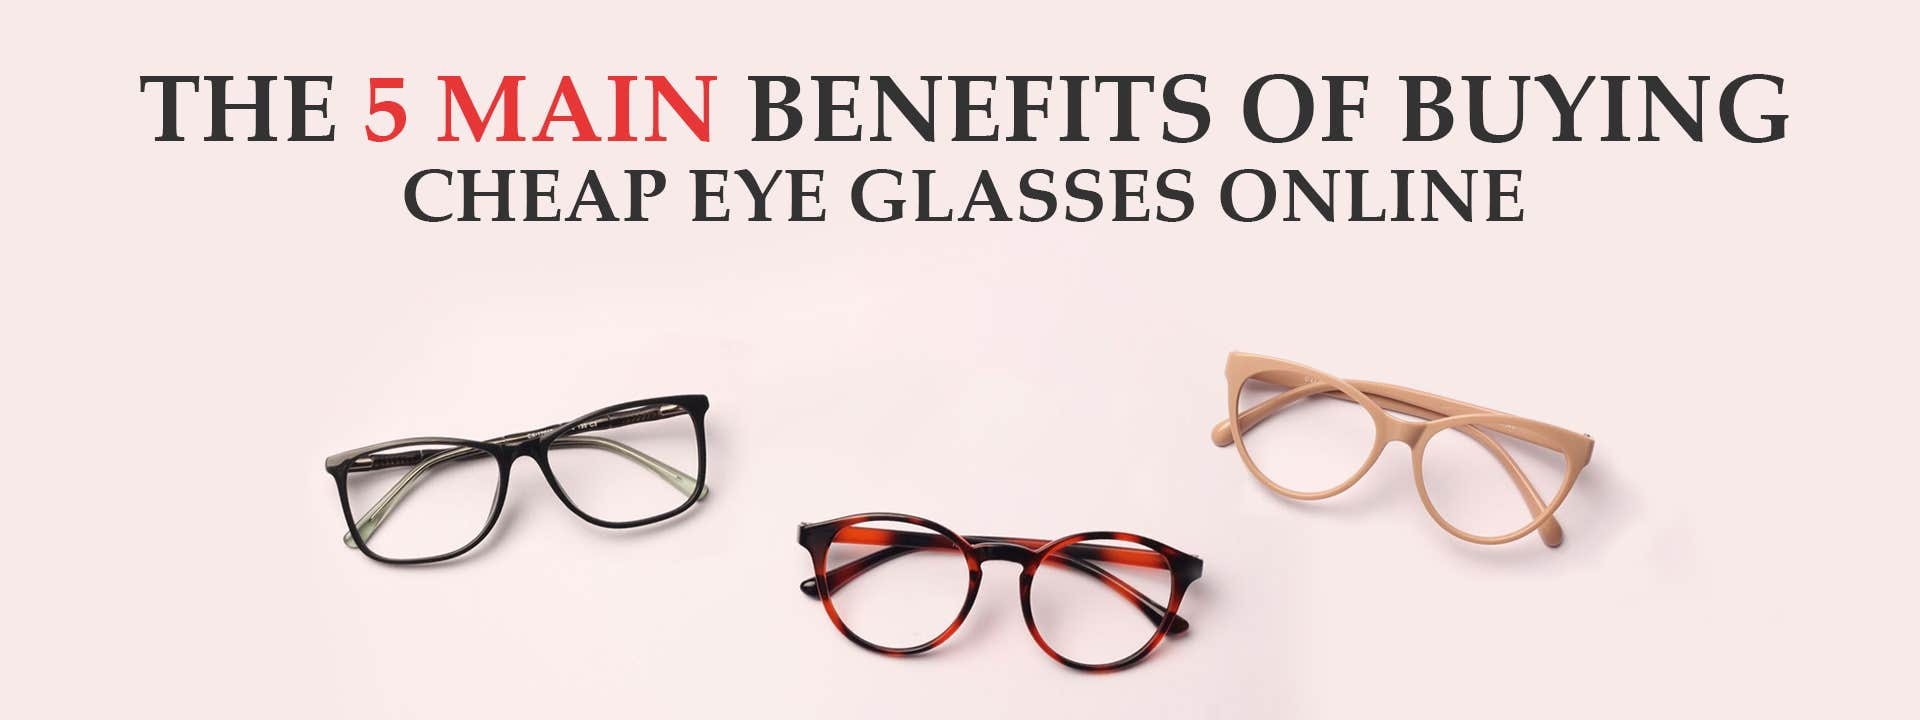 The 5 Main Benefits of Buying Cheap Eye Glasses Online